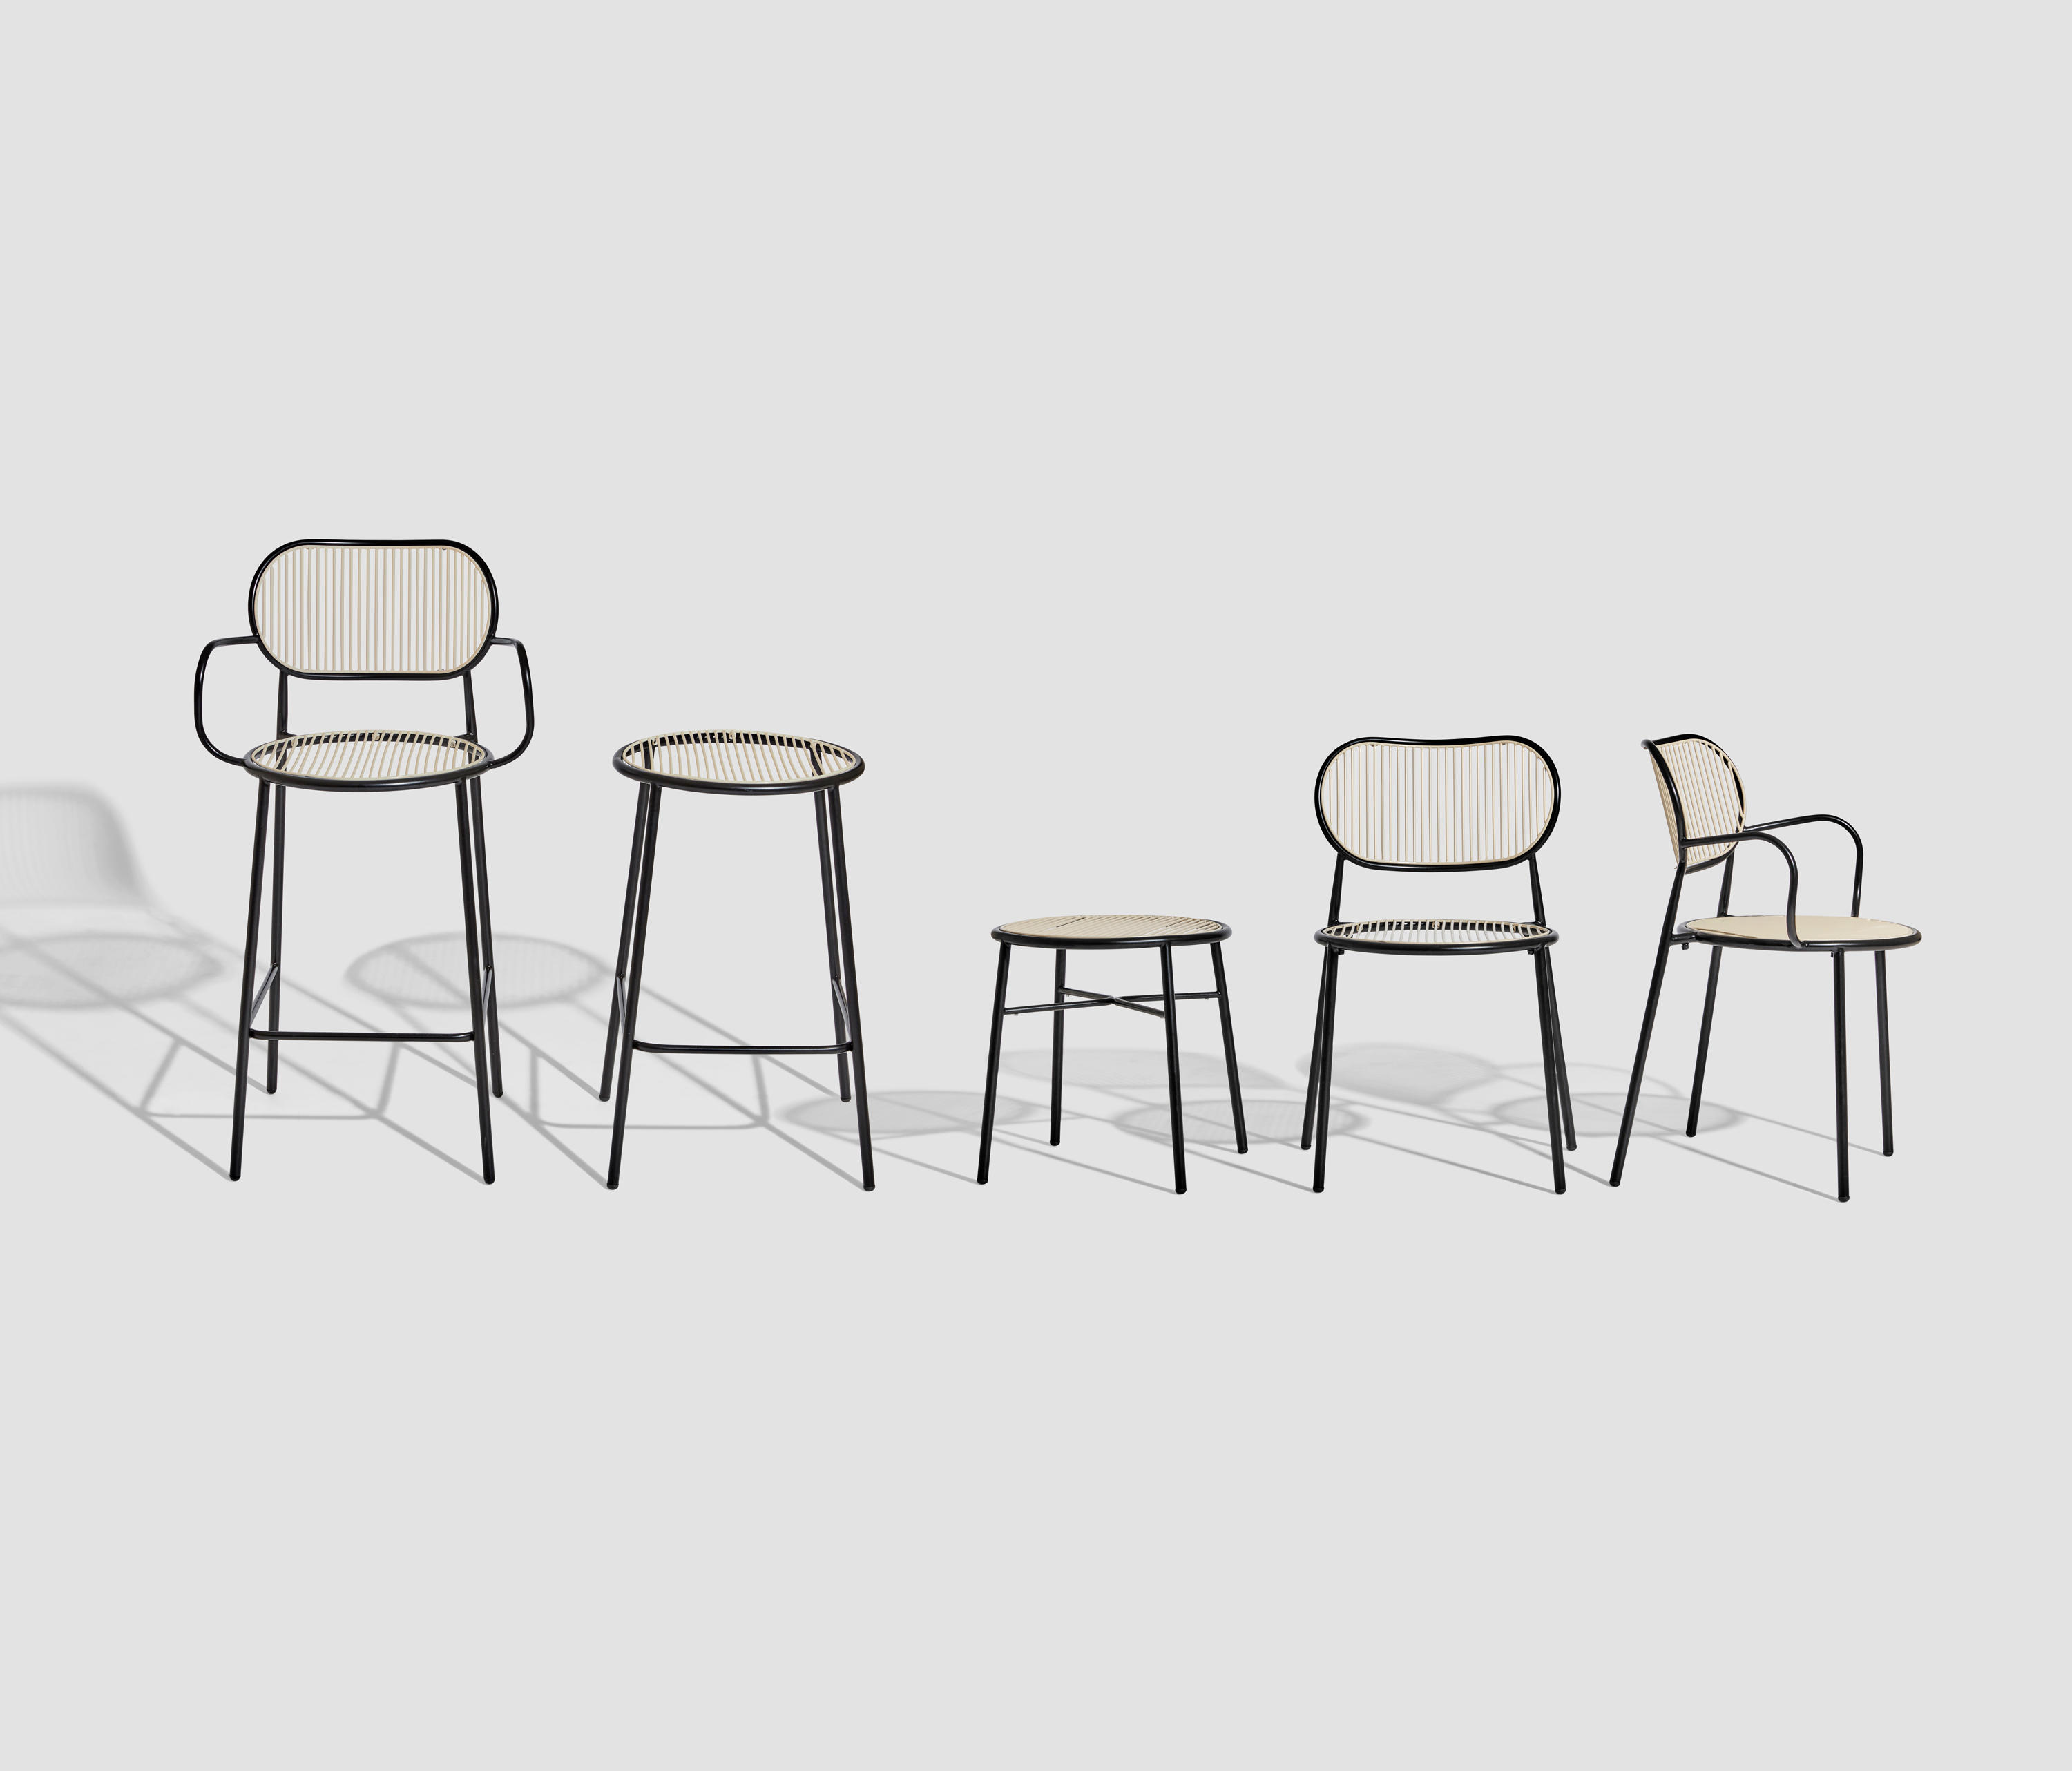 Phenomenal Piper Bar Stool Designer Furniture Architonic Gmtry Best Dining Table And Chair Ideas Images Gmtryco